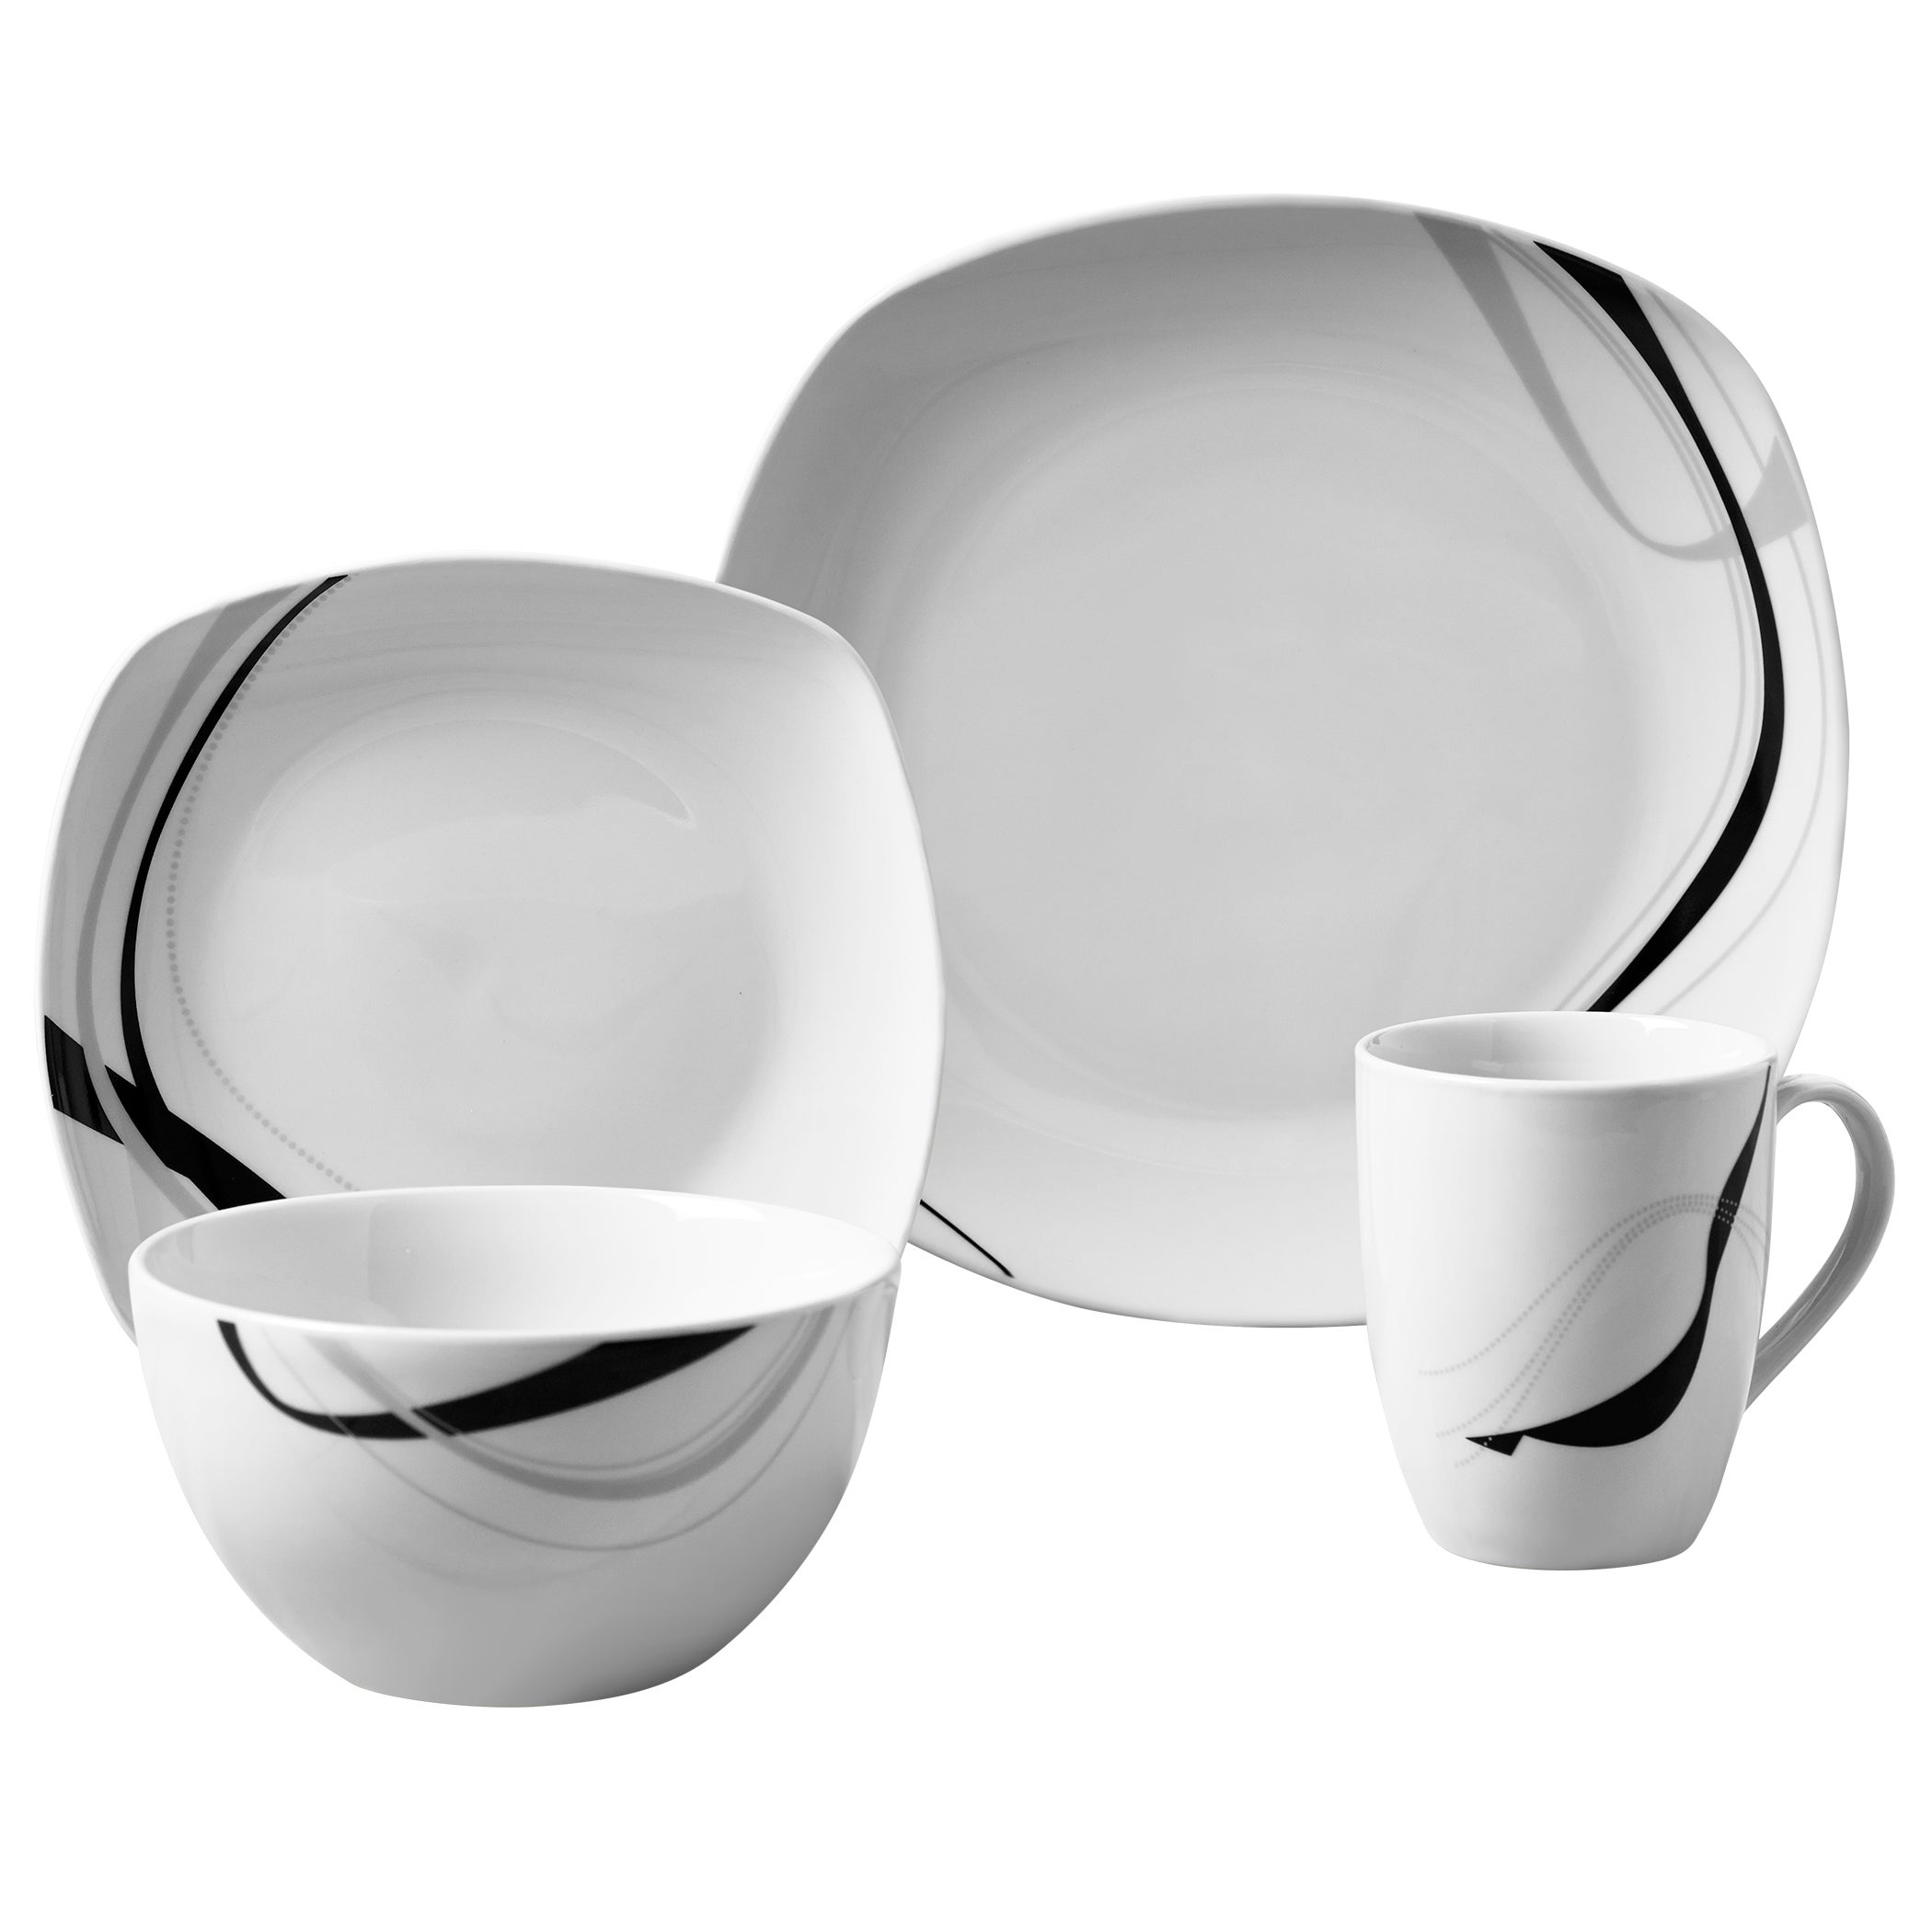 Carnival 16pc Soft Square Porcelain Dinnerware Set - Free Shipping Today - Overstock - 18524838  sc 1 st  Overstock.com & Carnival 16pc Soft Square Porcelain Dinnerware Set - Free Shipping ...